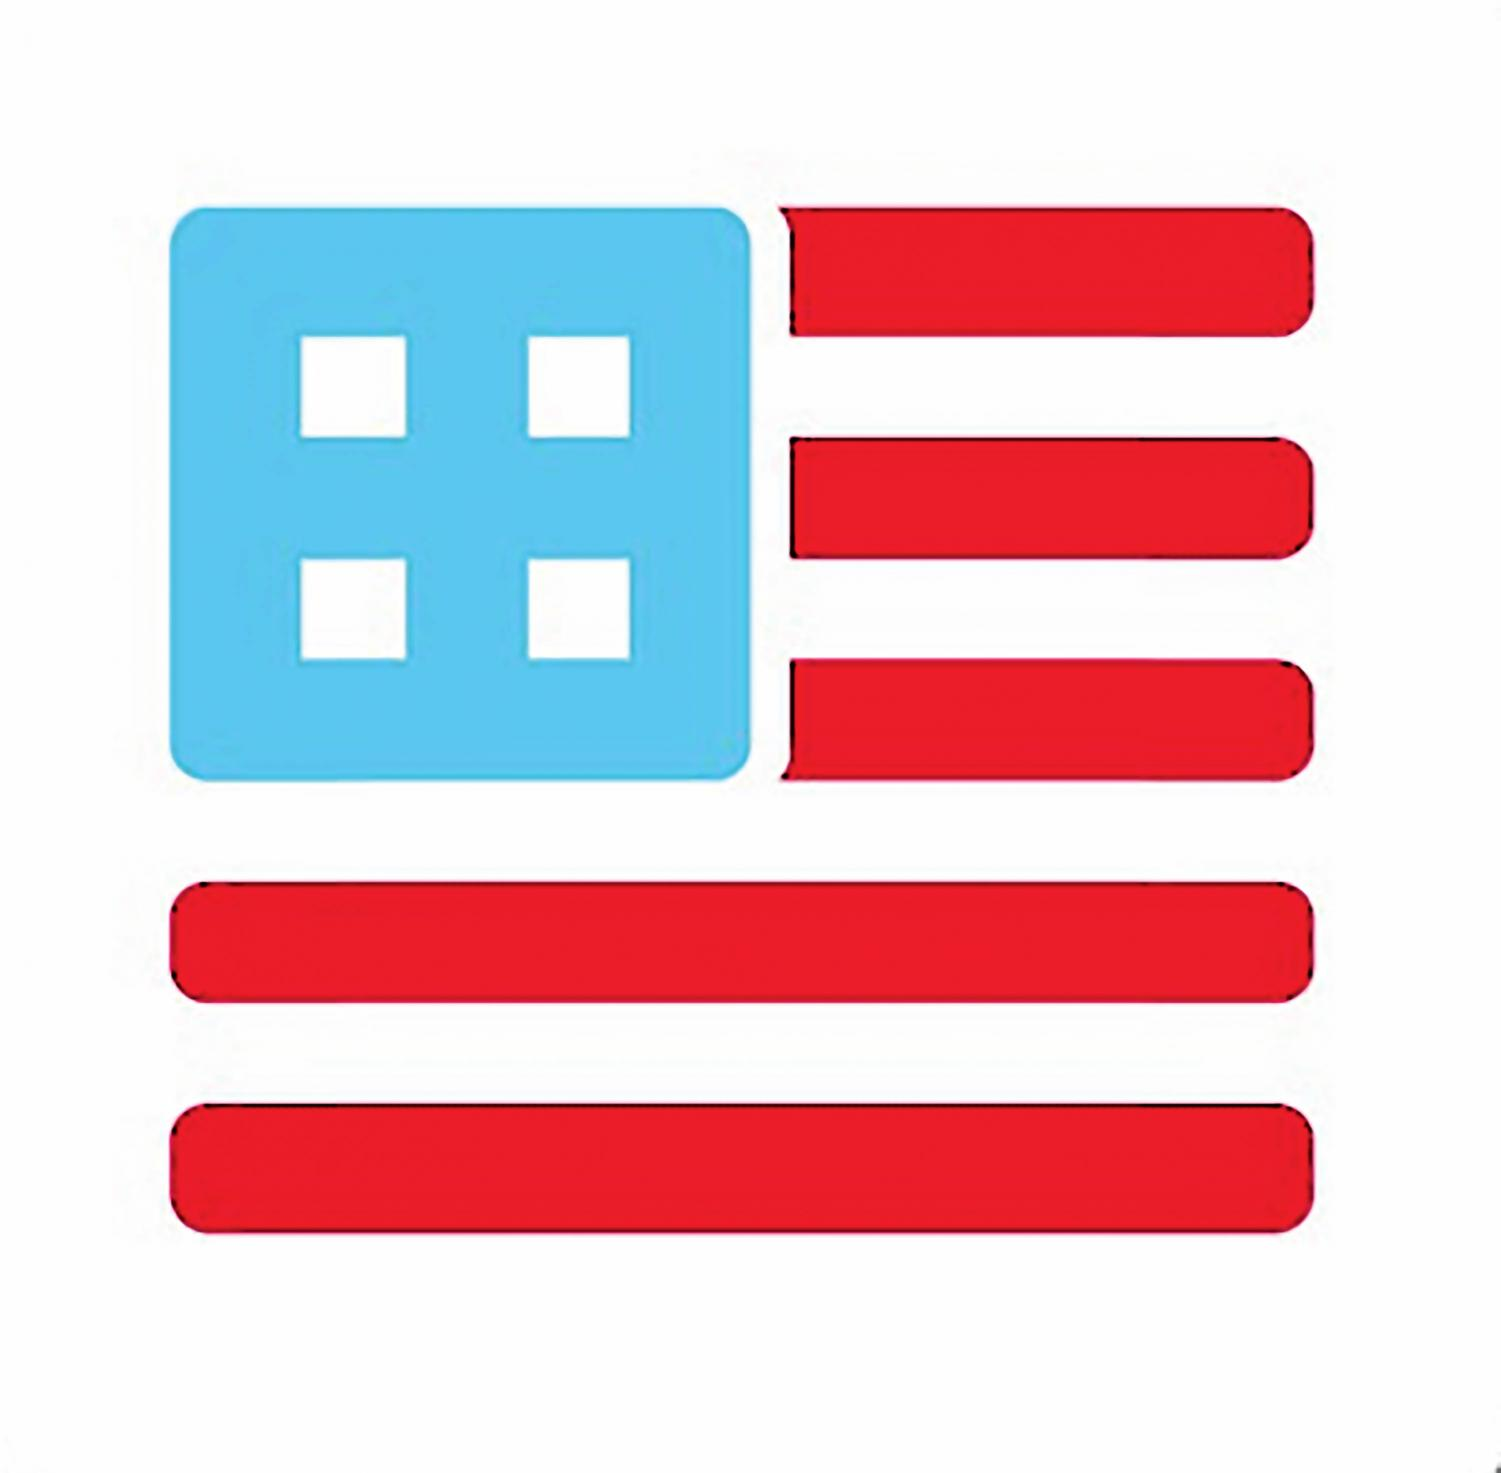 Countable is a political media company based in Oakland, California.